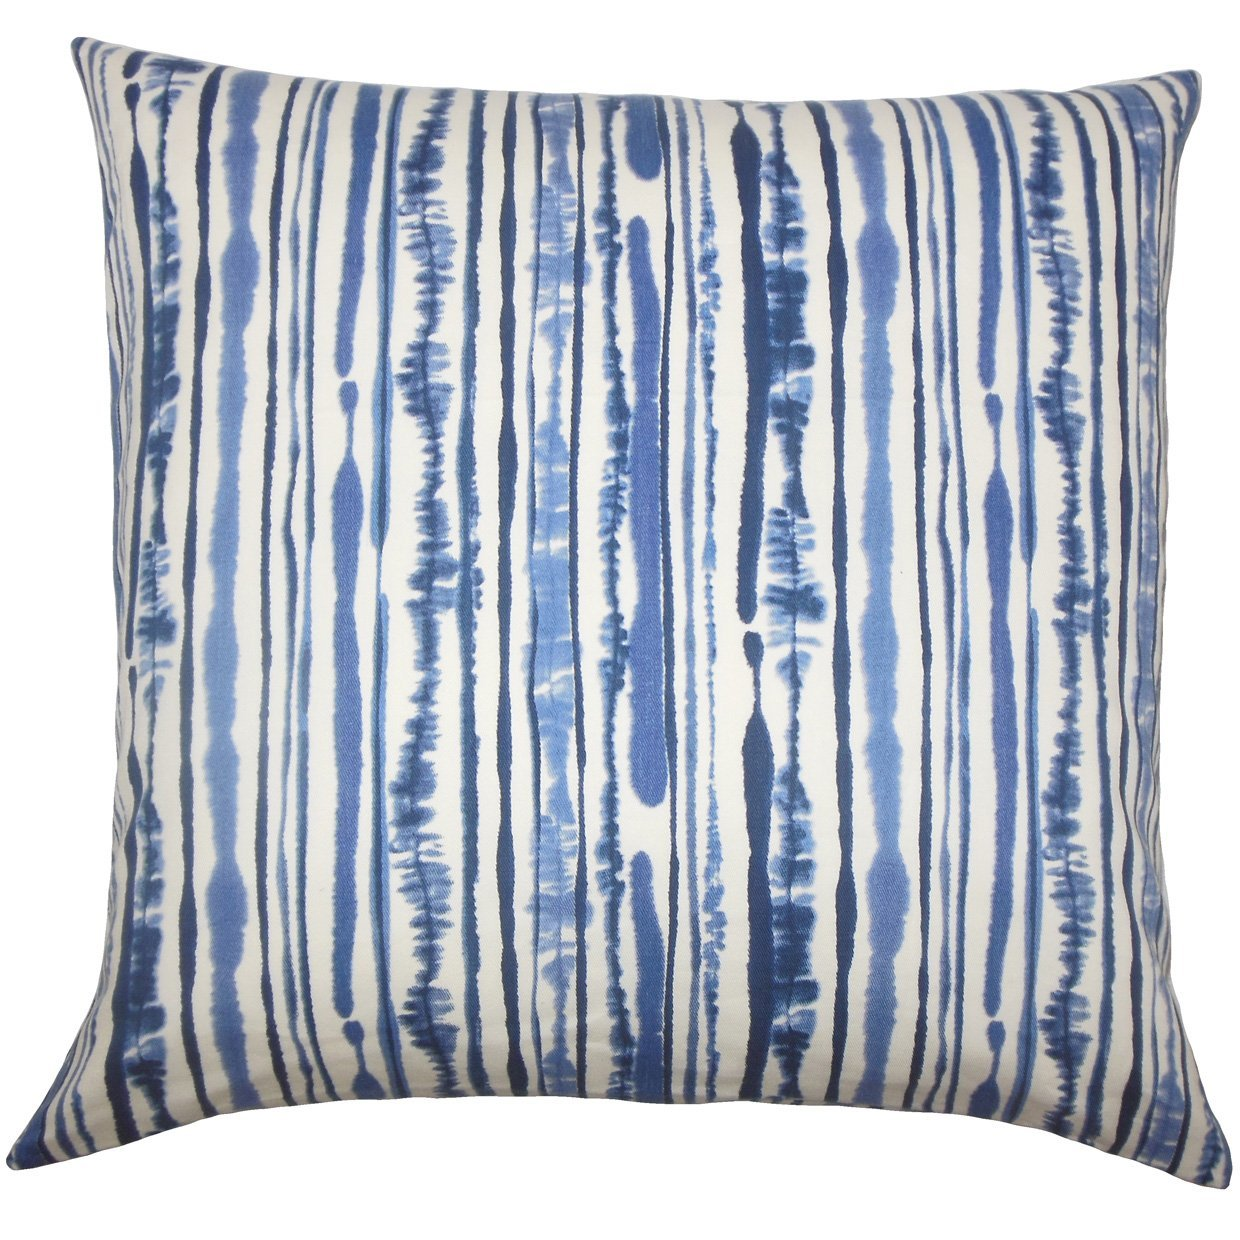 The Pillow Collection Jumoke Striped Bedding Sham Navy Queen//20 x 30